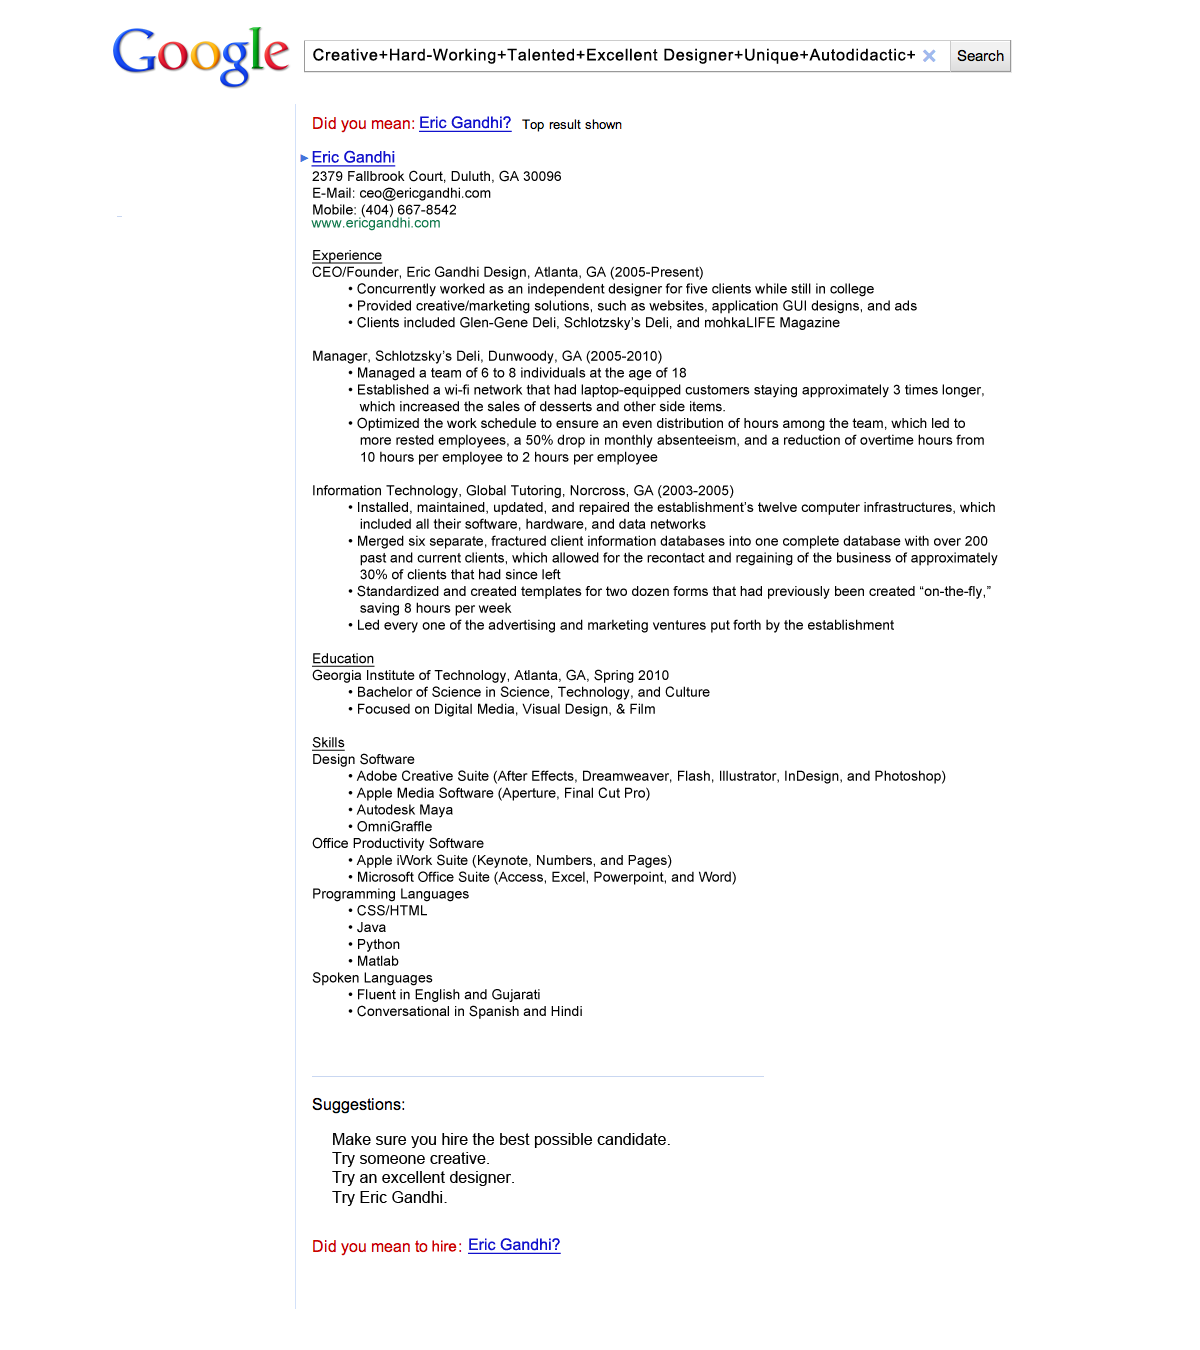 eric-gandhi-landed-an-interview-at-google-with-this-company-themed-resume